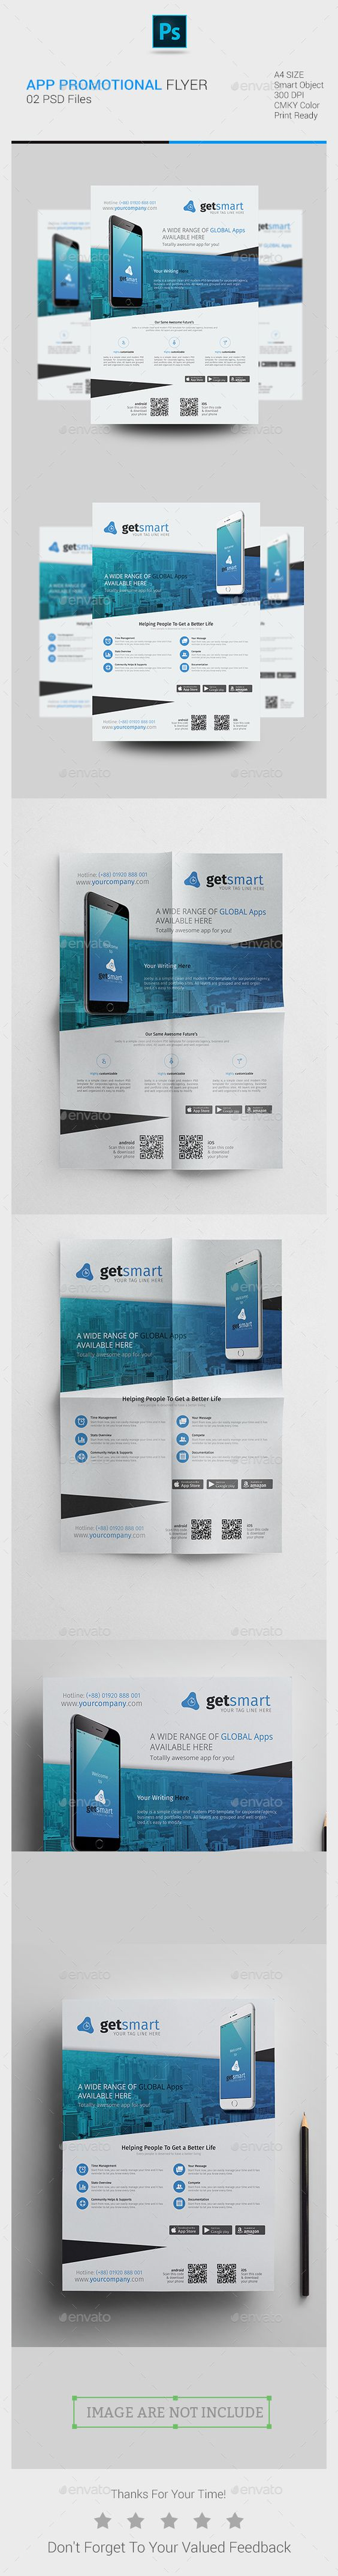 mobile app promotional flyer flyer template templates and mobiles mobile app promotional flyer template psd